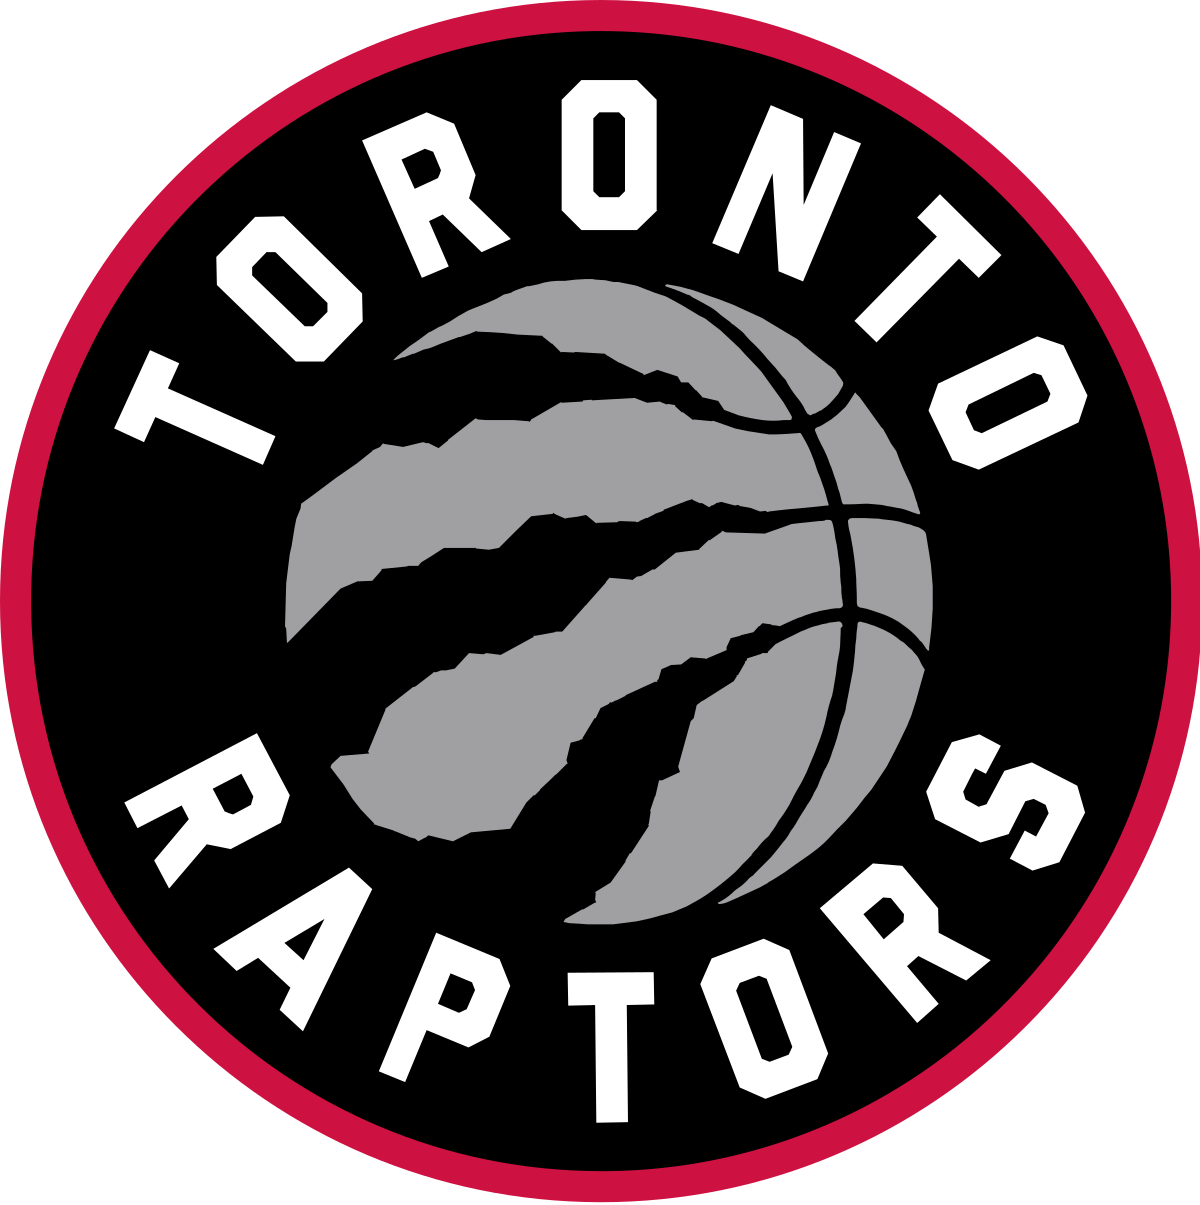 Old time basketball clipart clipart royalty free stock Toronto Raptors - Wikipedia clipart royalty free stock